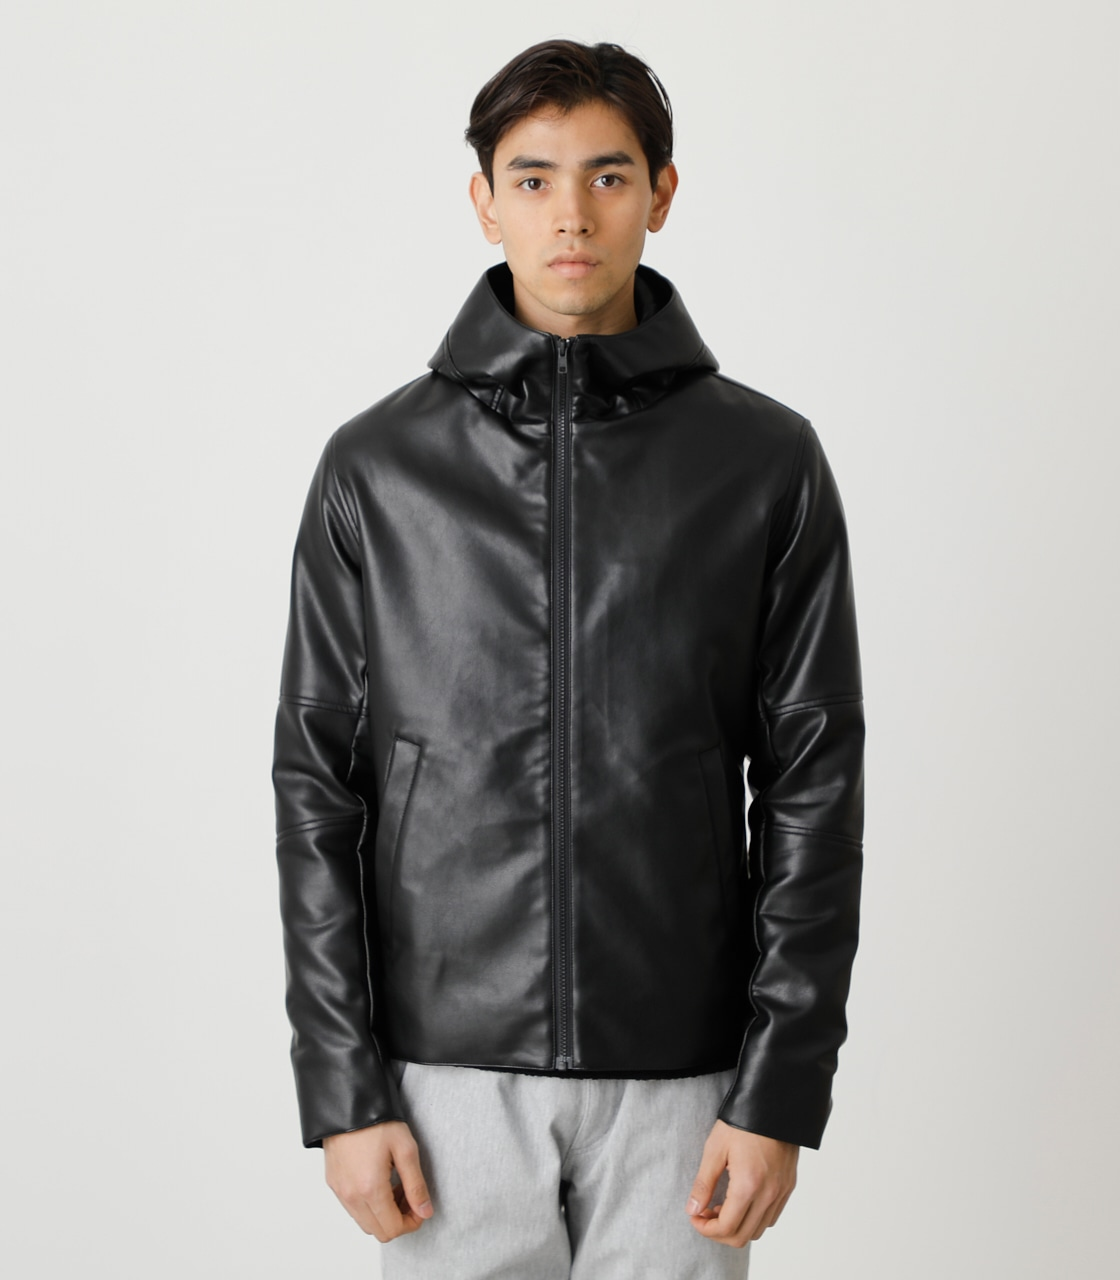 ECO LEATHER HOODED/エコレザーフーデッド 詳細画像 BLK 5